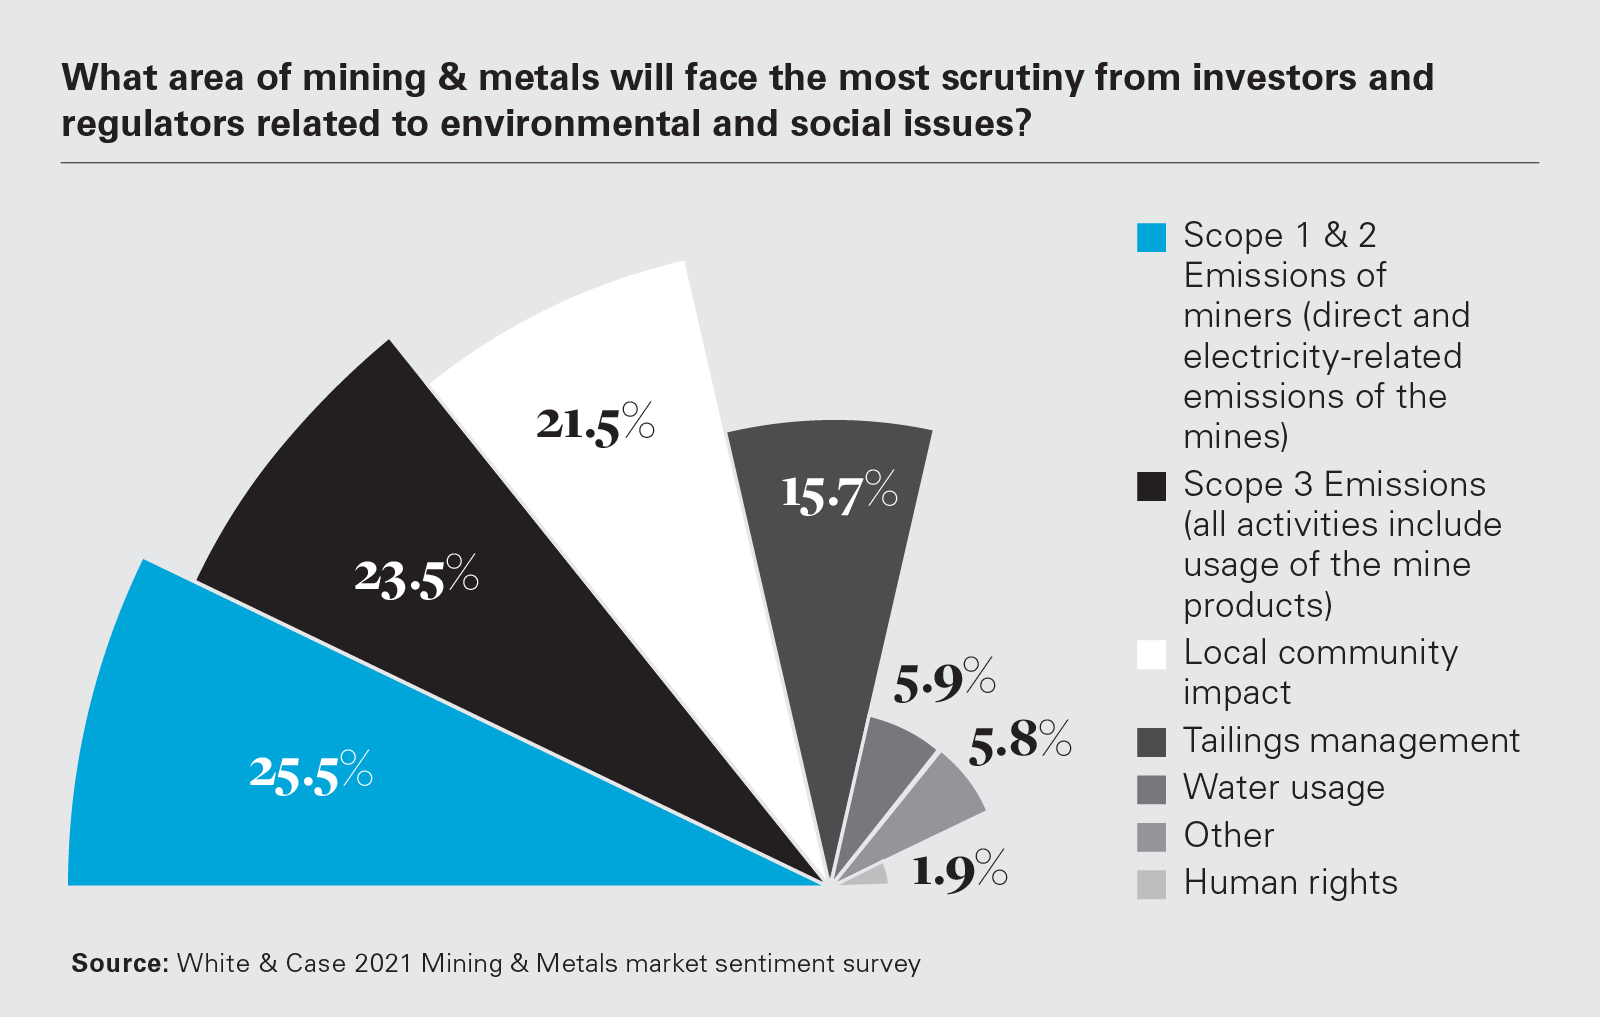 What area of mining & metals will face the most scrutiny from investors and regulators related to environmental and social issues? (PNG)